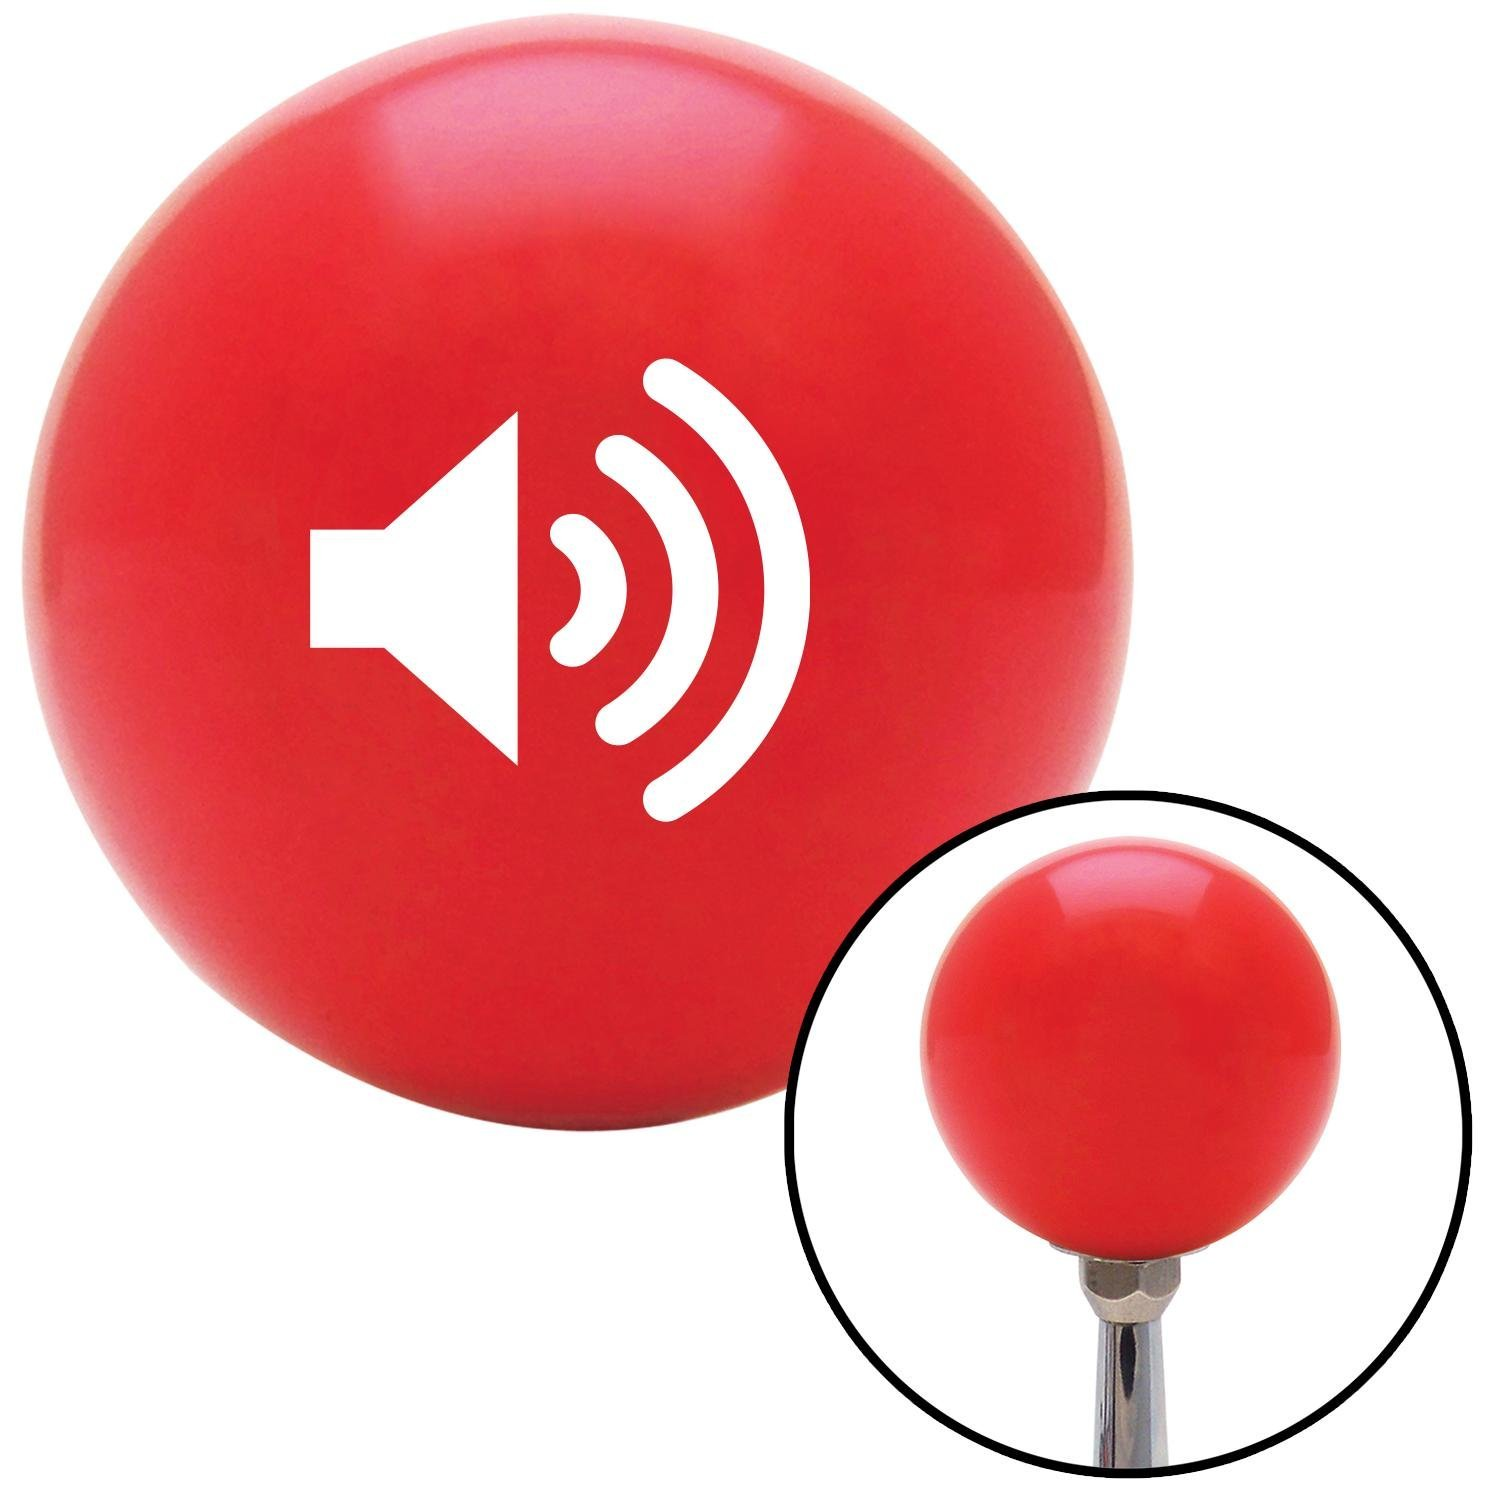 American Shifter 98630 Red Shift Knob with M16 x 1.5 Insert White Speaker On